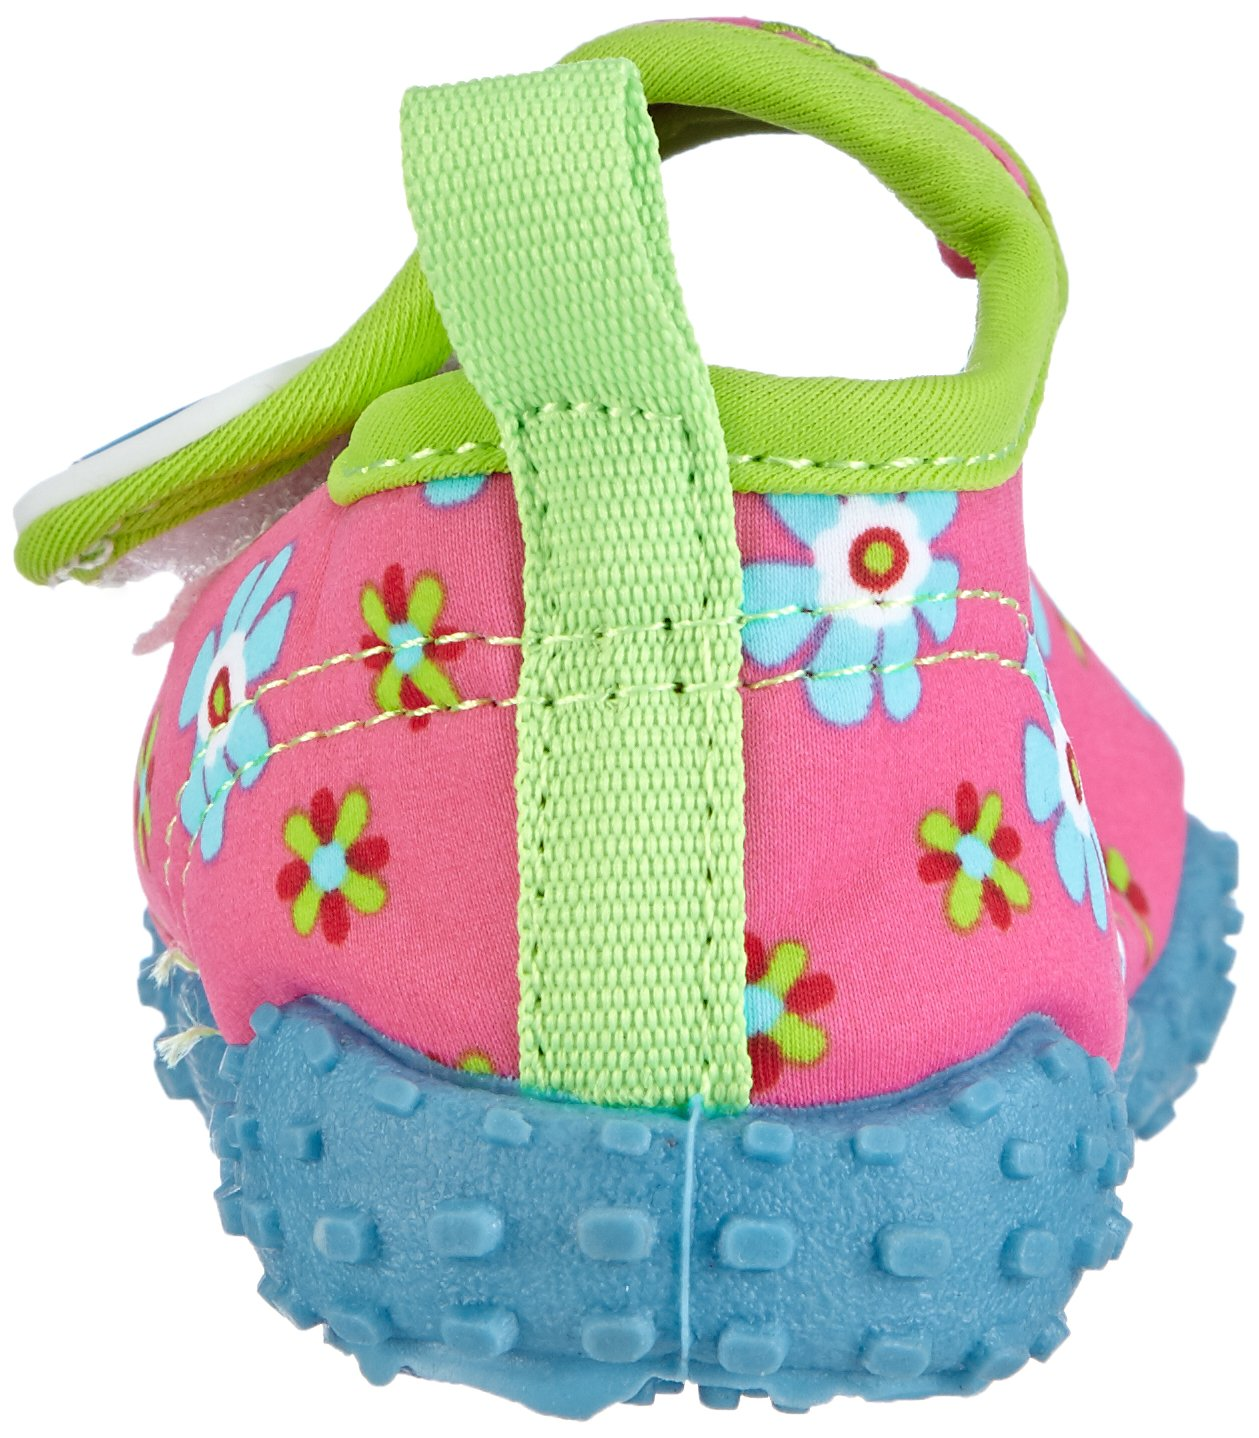 Playshoes Girl's UV Protection Flower Collection Aqua Swimming/Beach Shoes (4.5 M US Toddler) by Playshoes (Image #2)